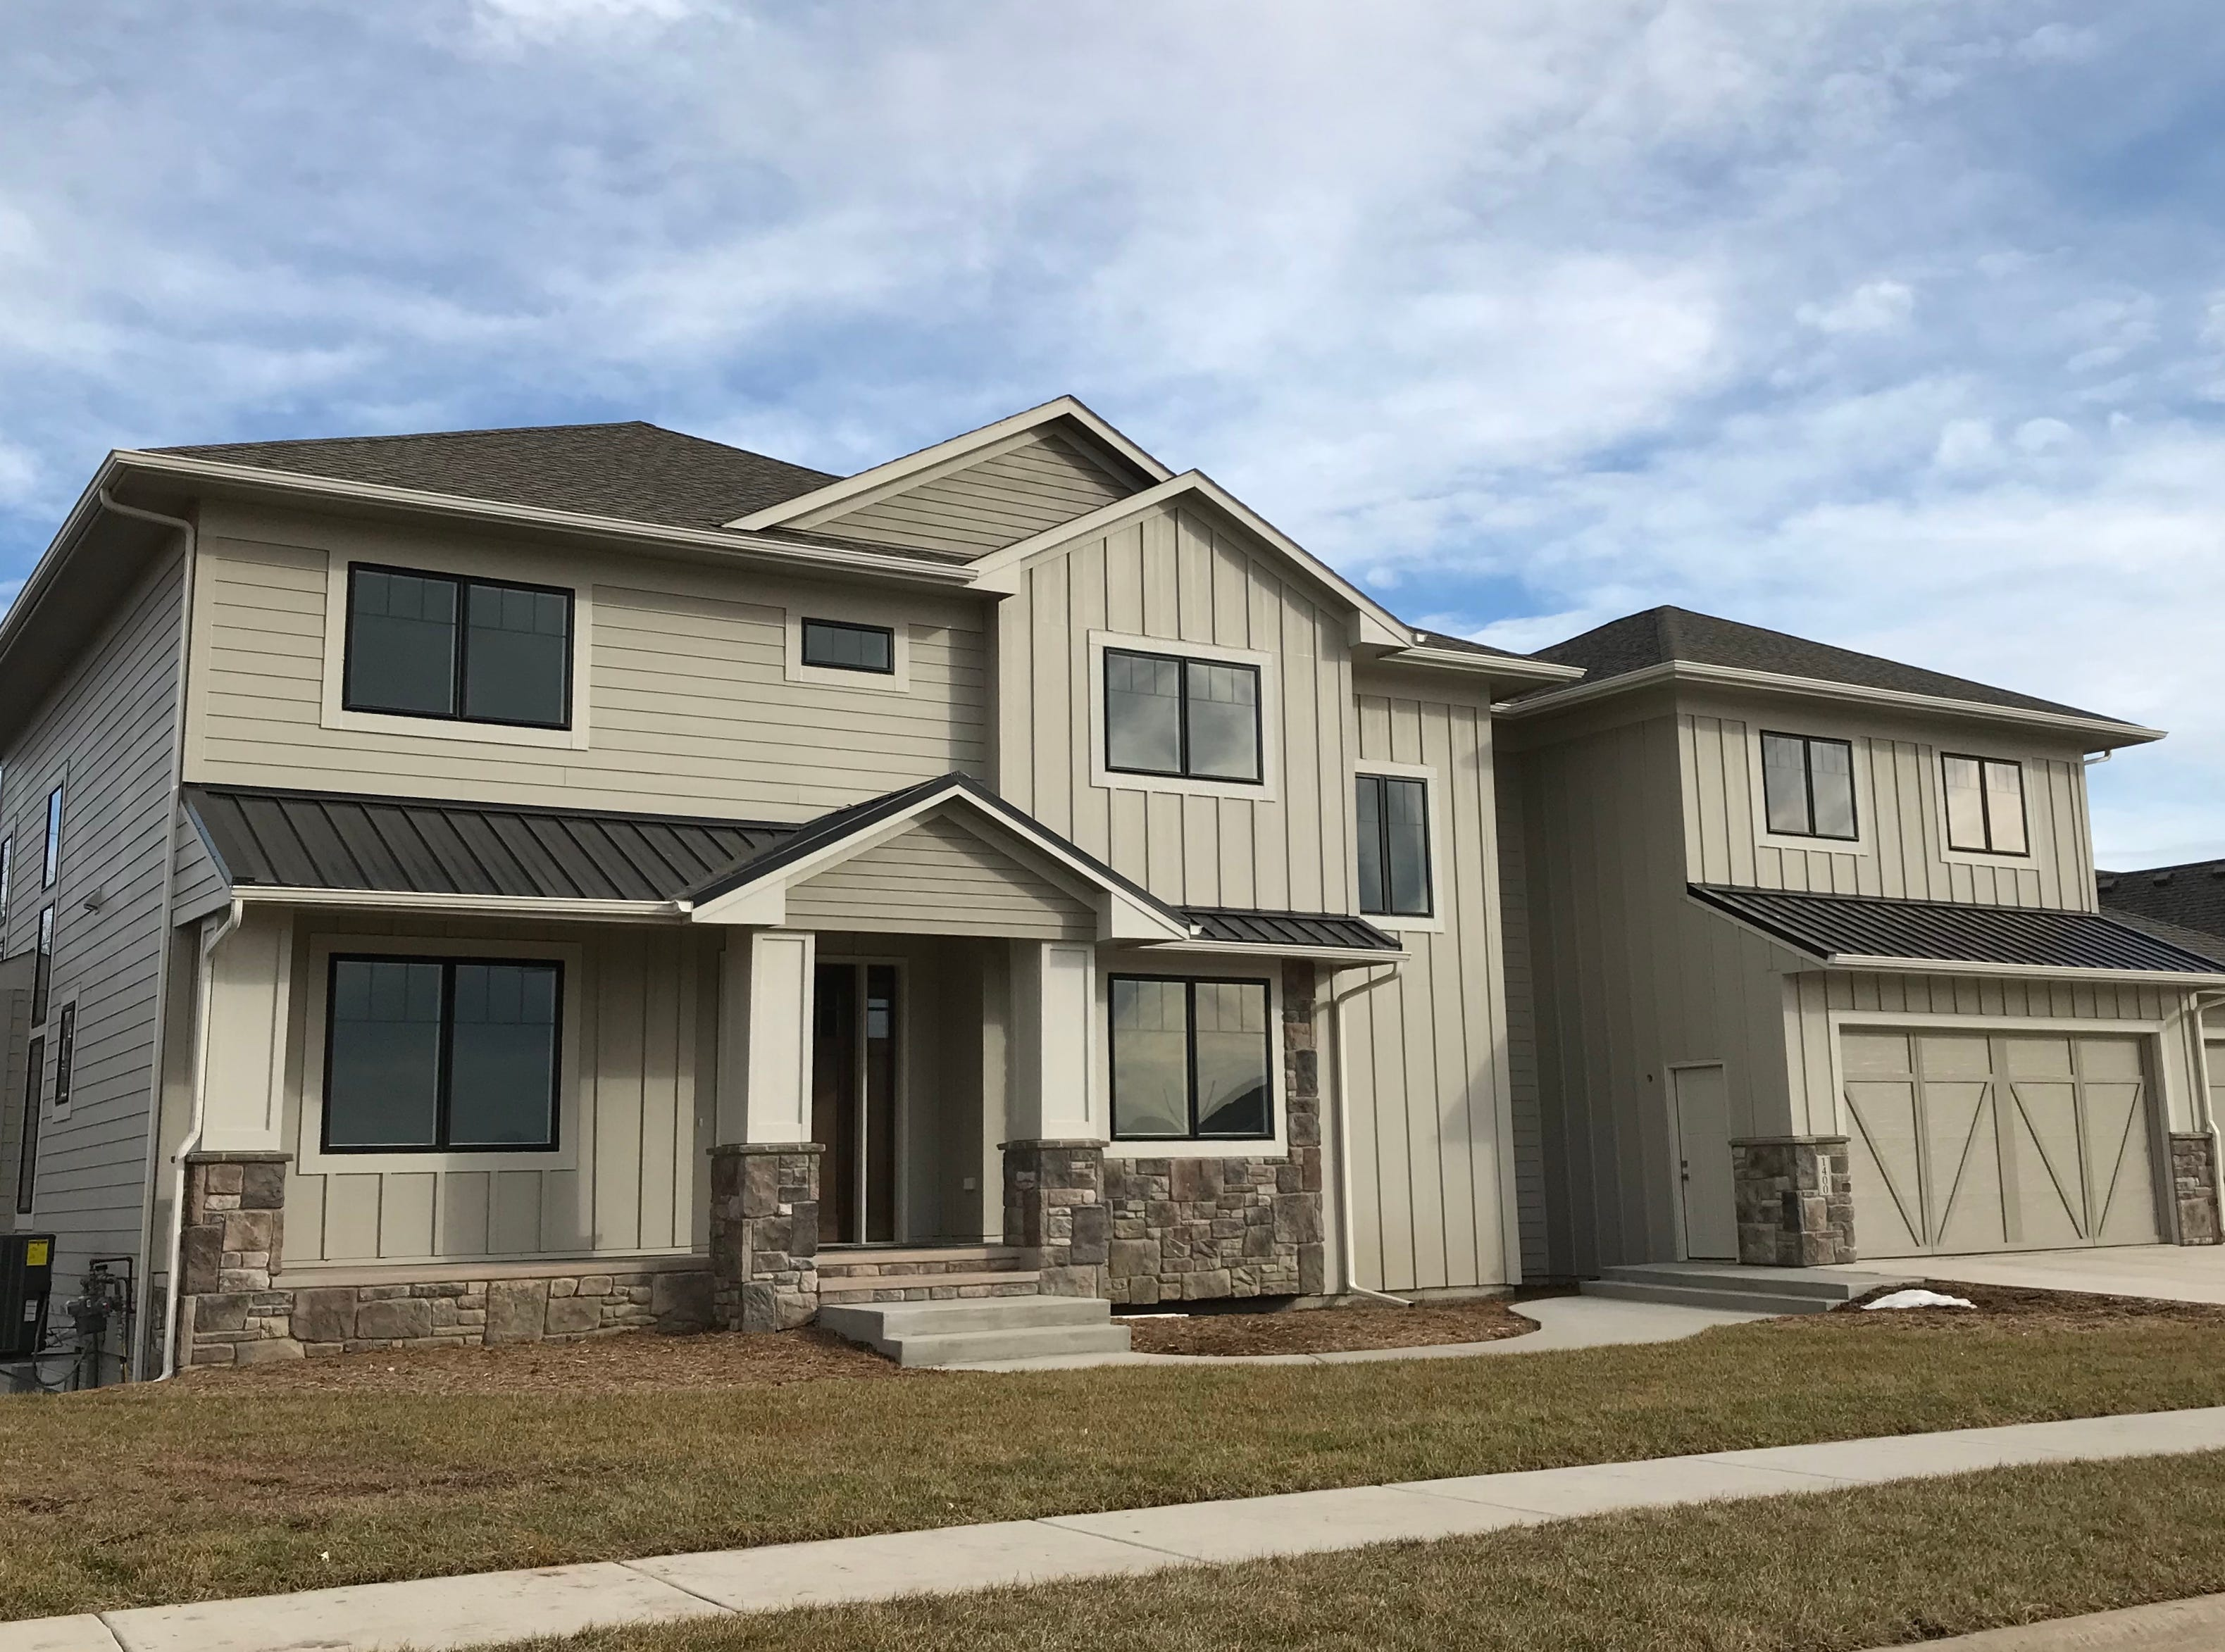 The new home built at 1400 Scarlet Oak Trail in the Arbor's Edge development in east Sioux Falls sold for $1.25 million, topping the home sales report for the week ending Oct. 5.